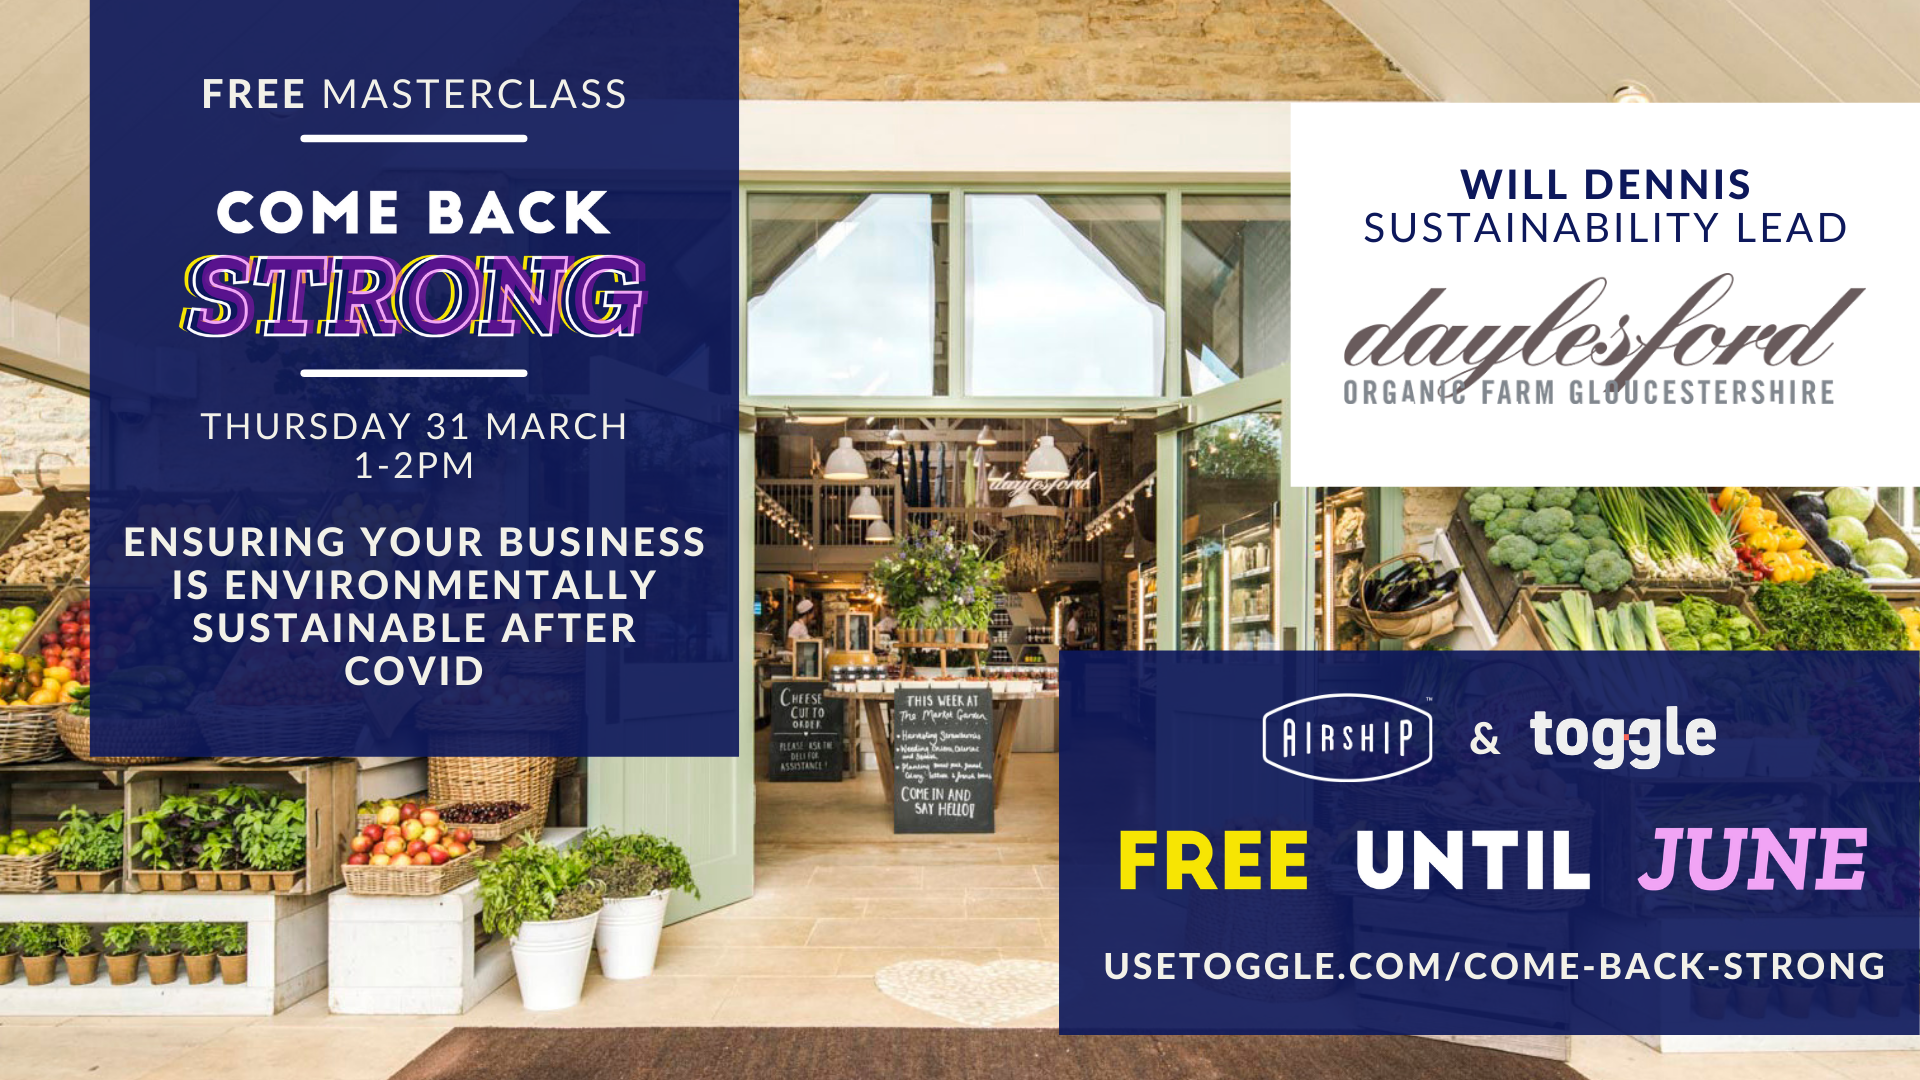 #ComeBackStrong Masterclass: Top tips to ensure your hospitality business is environmentally sustainable after lockdown